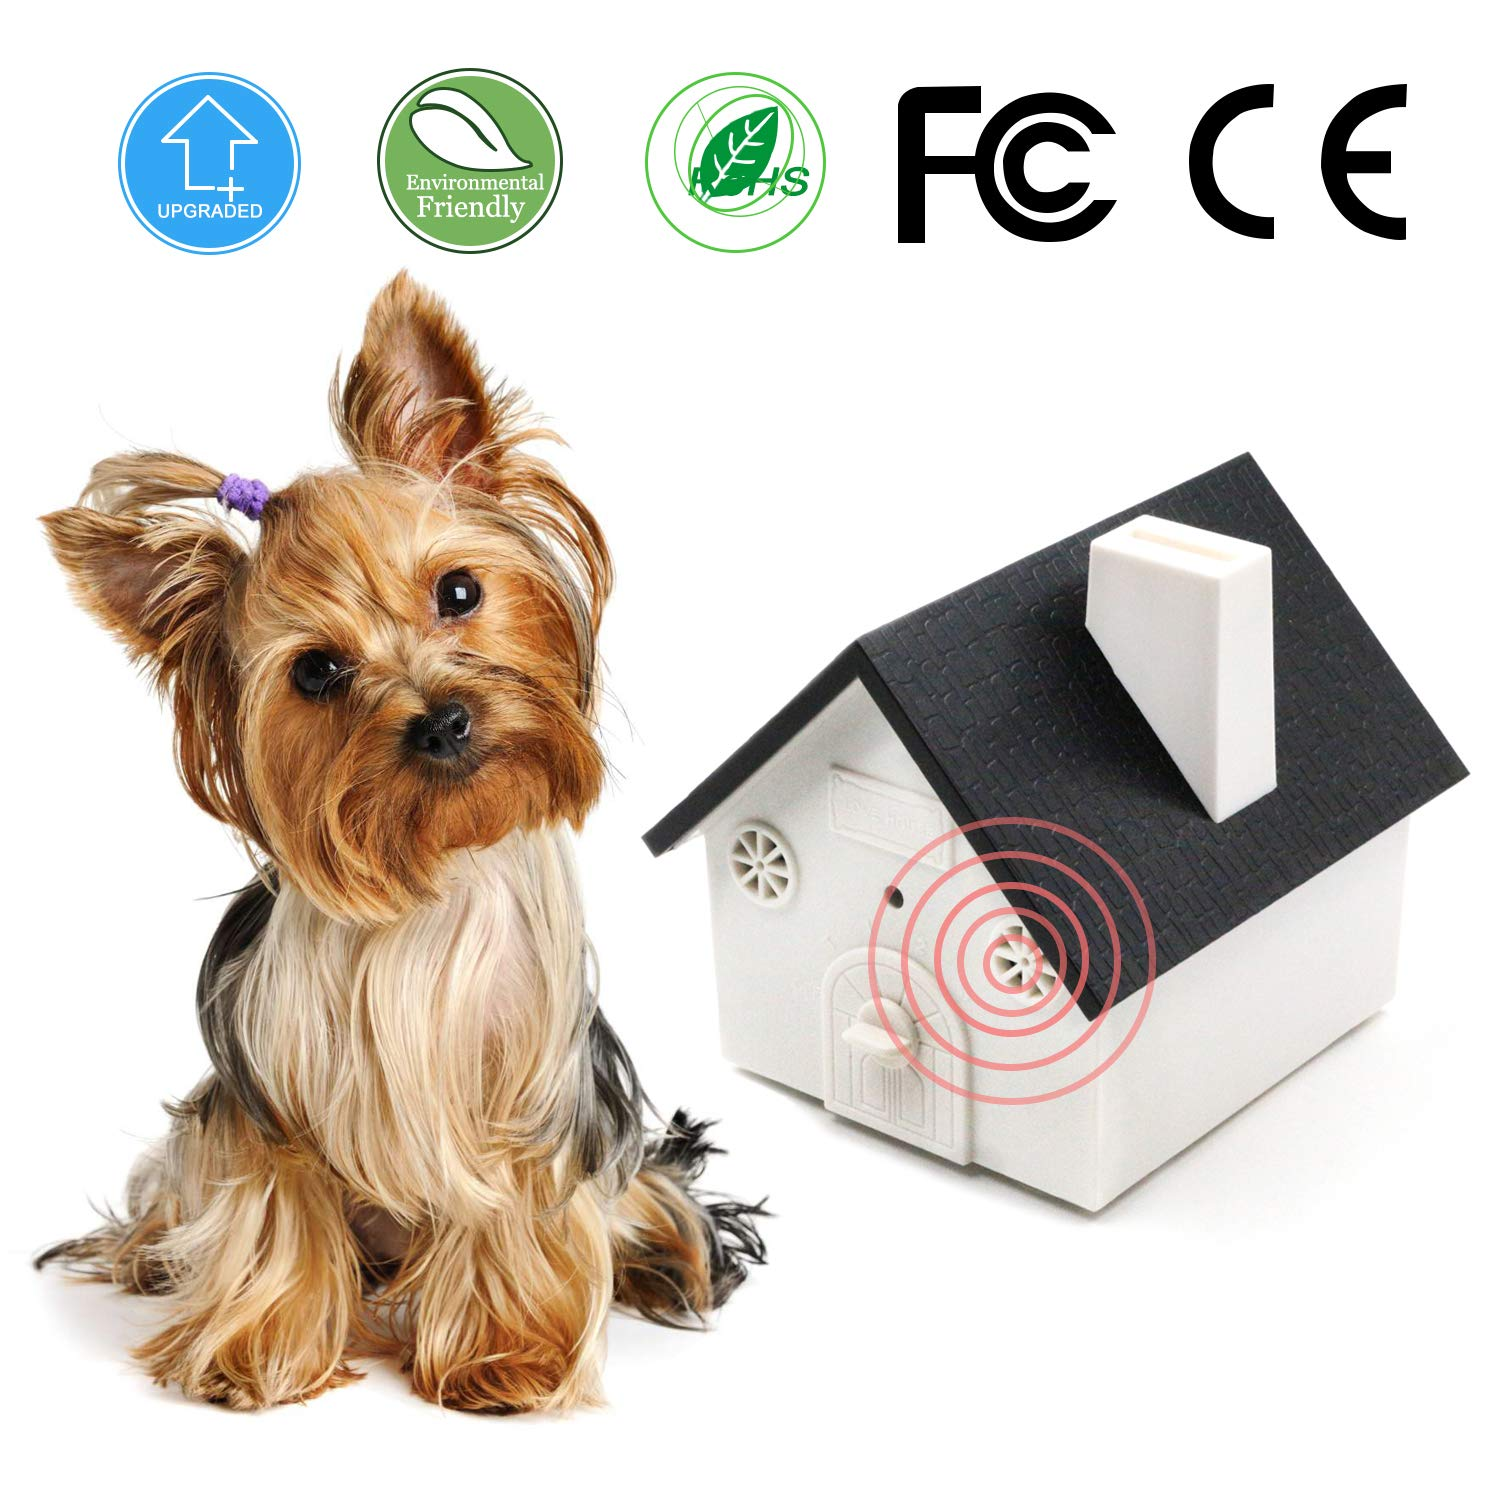 Verfanny Anti Bark Control Device, 2018 New Ultrasonic Dog Bark Control Deterrents,Stop Barking Repellent,Training Tool,Indoor&Outdoor Use, Suitable for Small/Medium/Large Dogs, Safe for Pets&Human